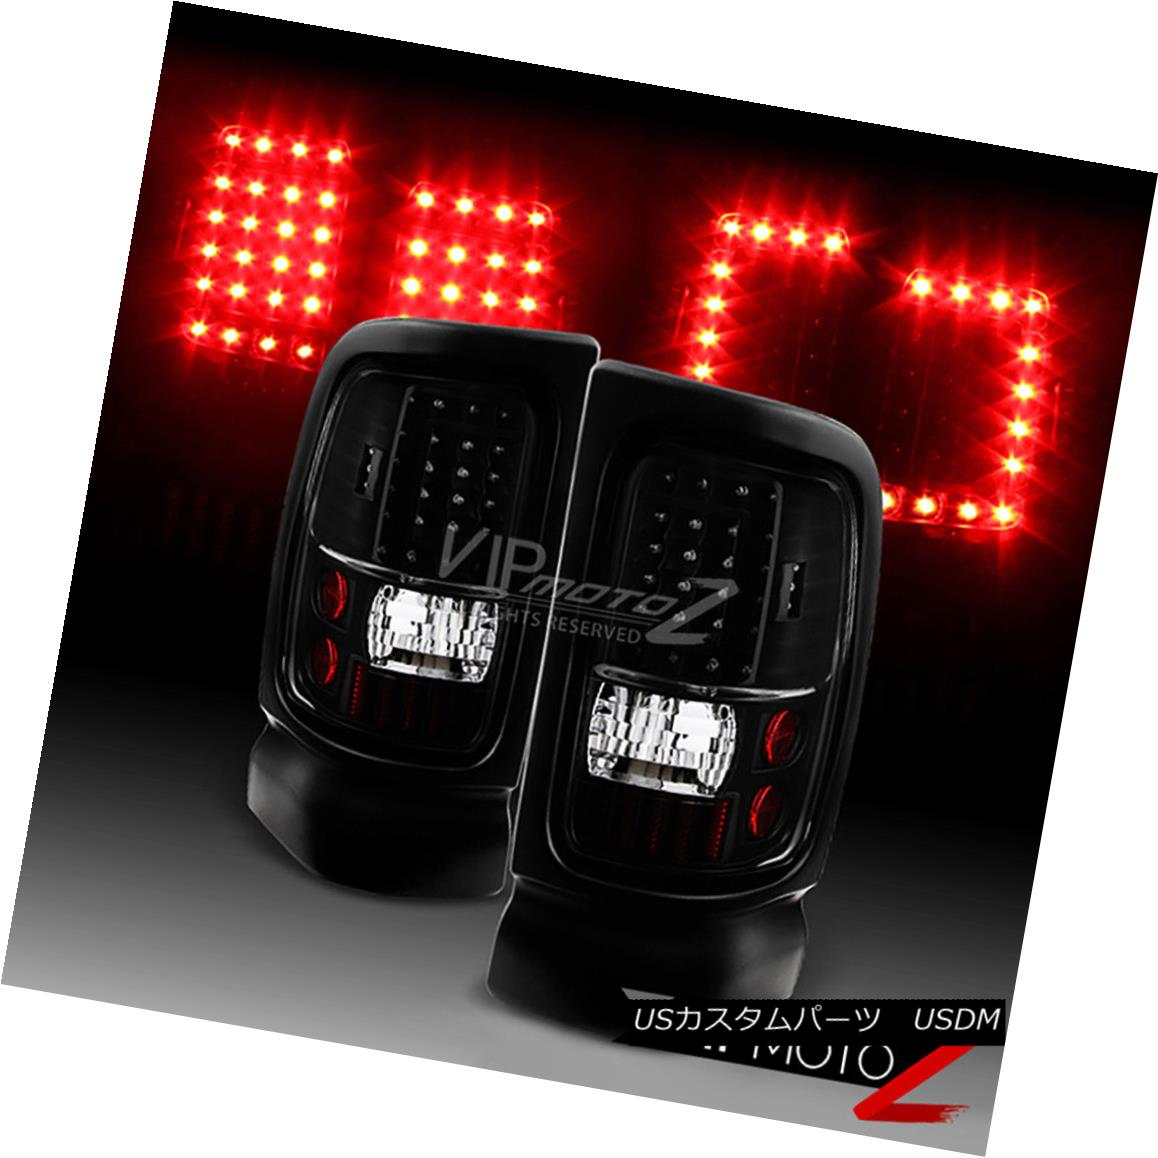 テールライト 1994-2001 Dodge Ram 1500 2500 3500 [Infinity Black] LED Brake Signal Tail Lights 1994-2001 Dodge Ram 1500 2500 3500 [Infinity Black] LEDブレーキ信号テールライト